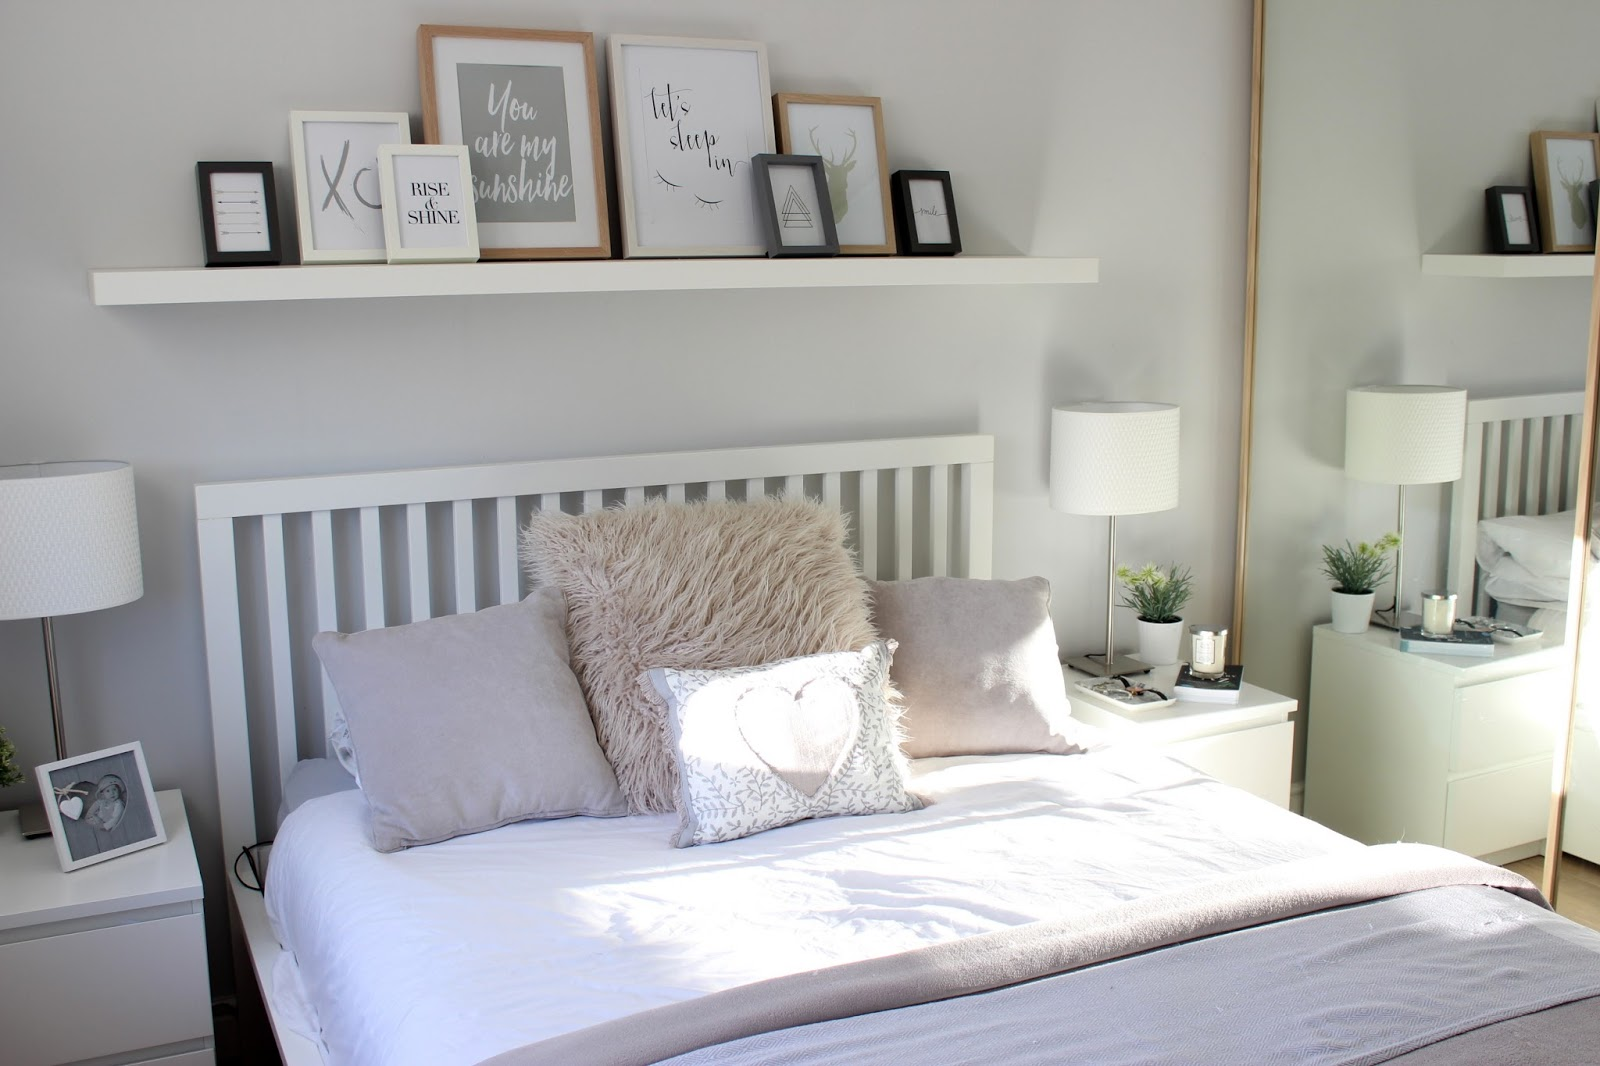 Home bedroom tour maisy meow for Images of bed rooms